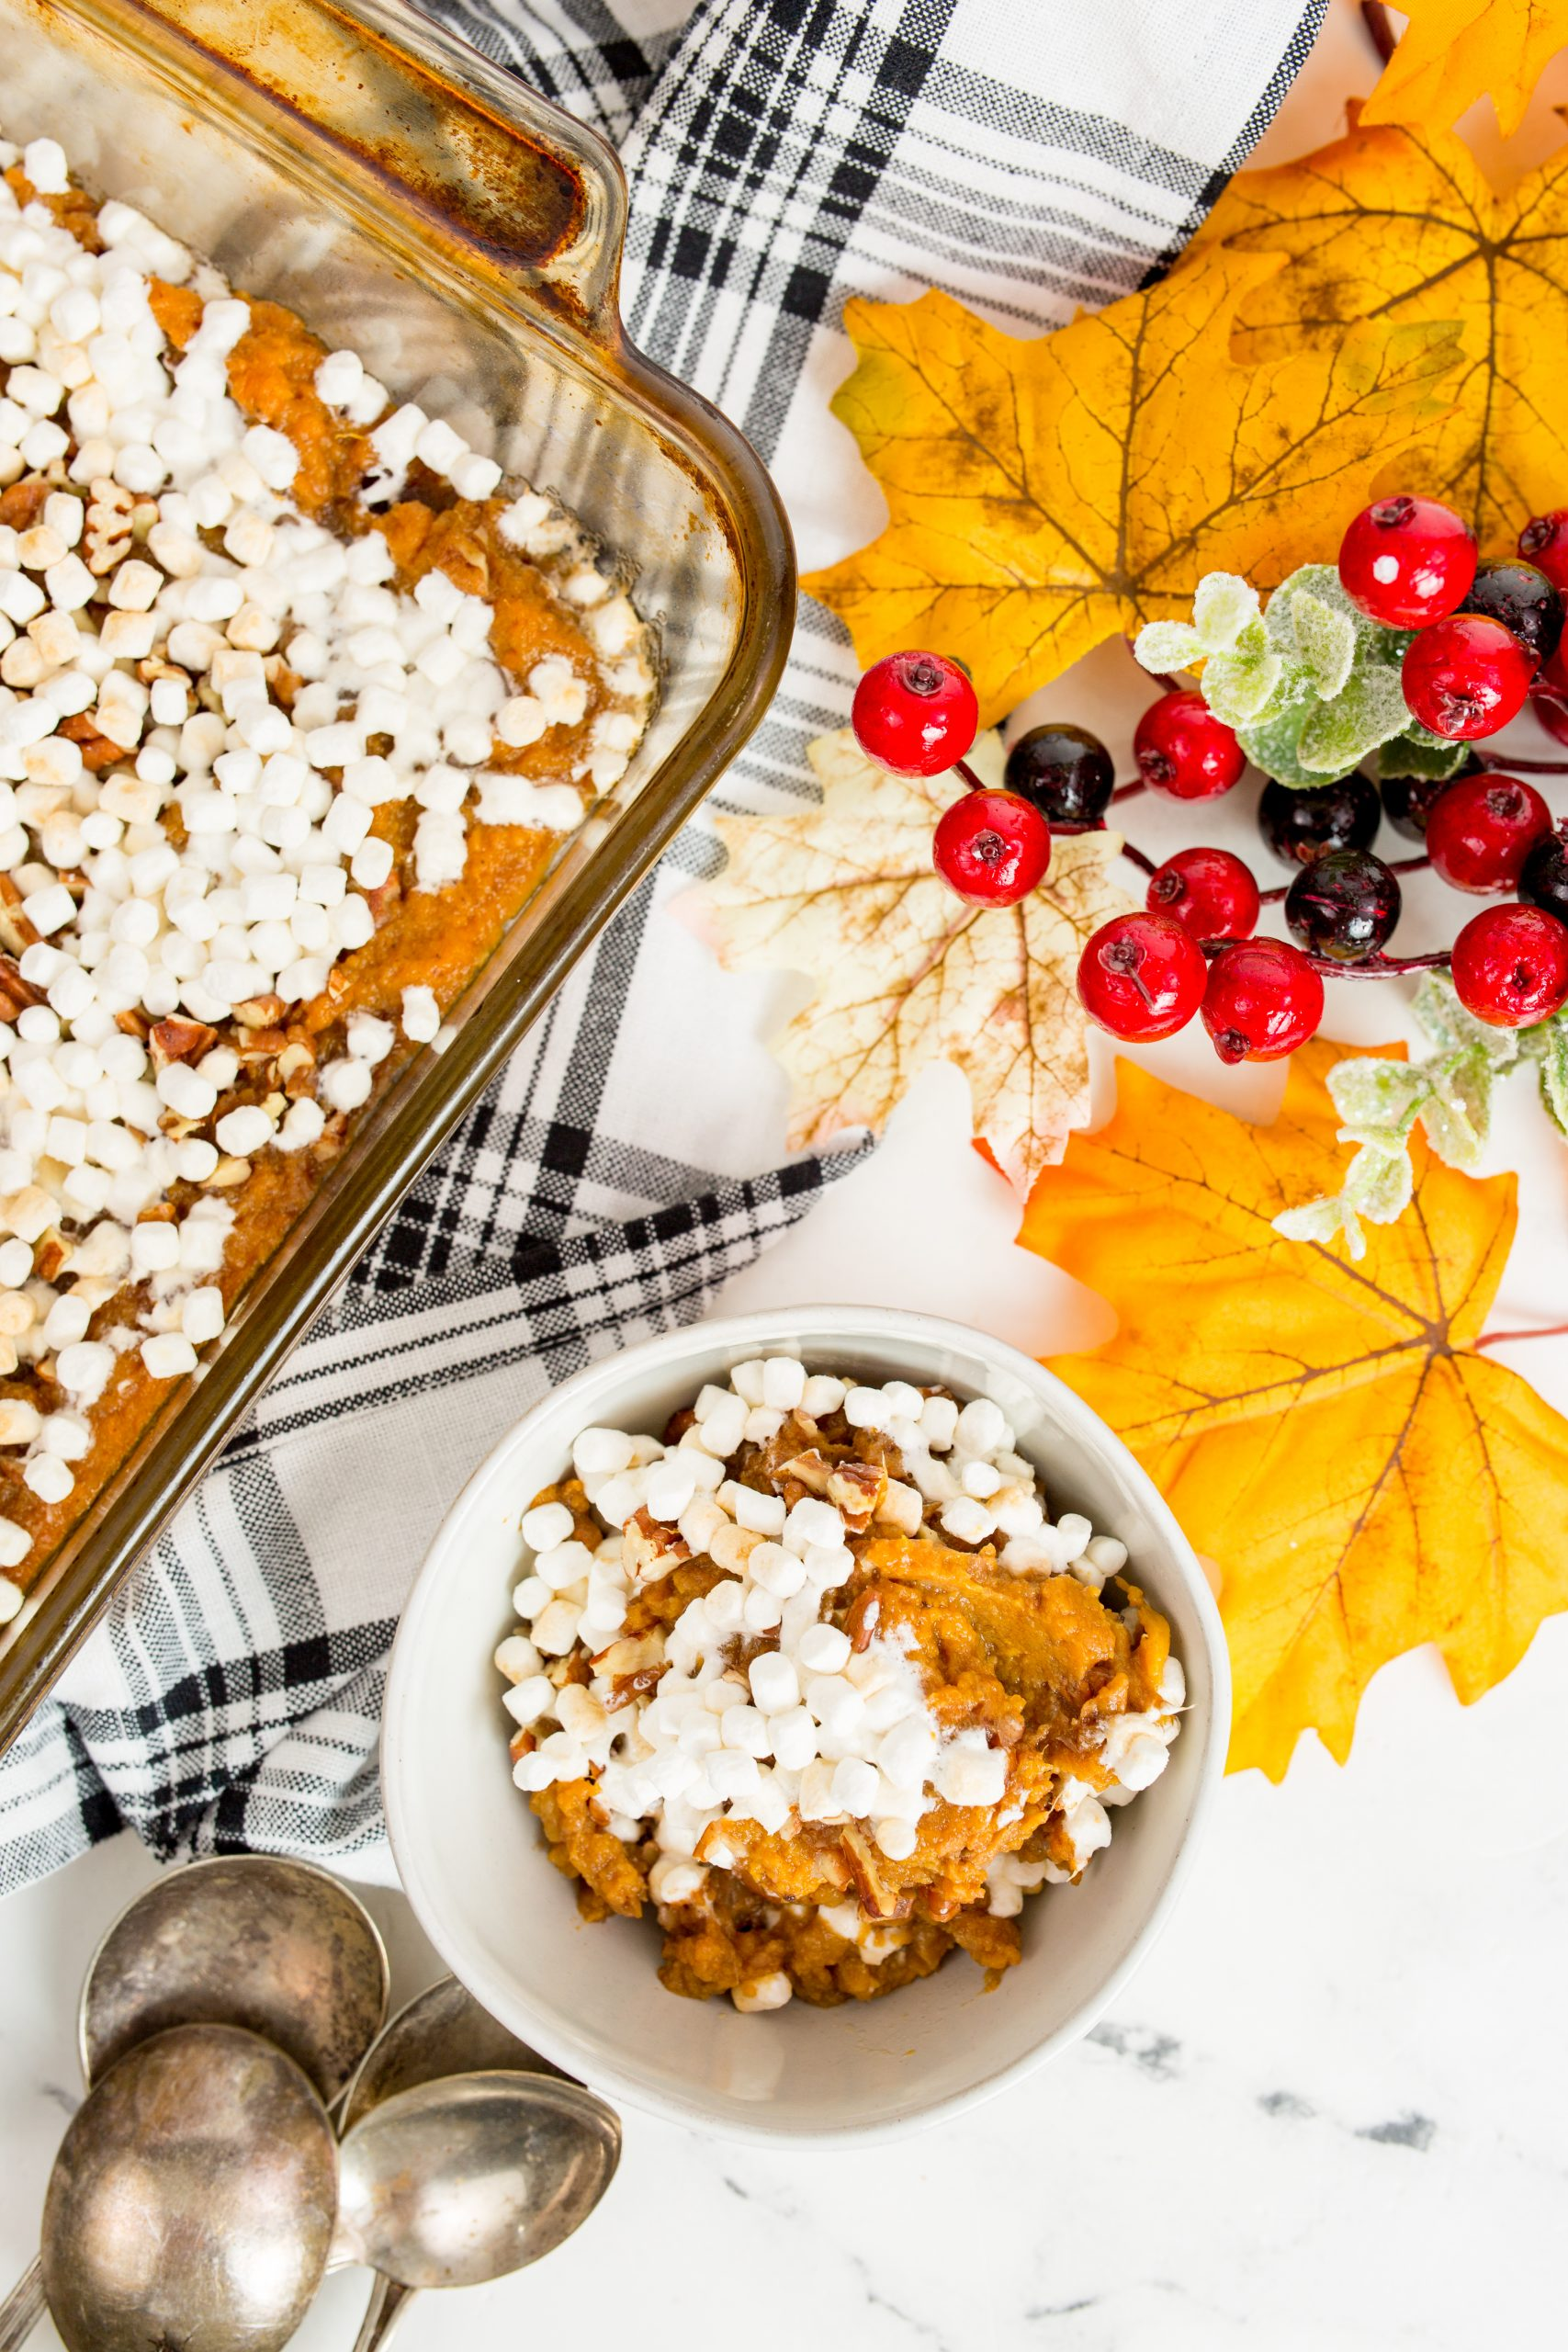 Overhead shot of sweet potato casserole with bowl and fall leaves